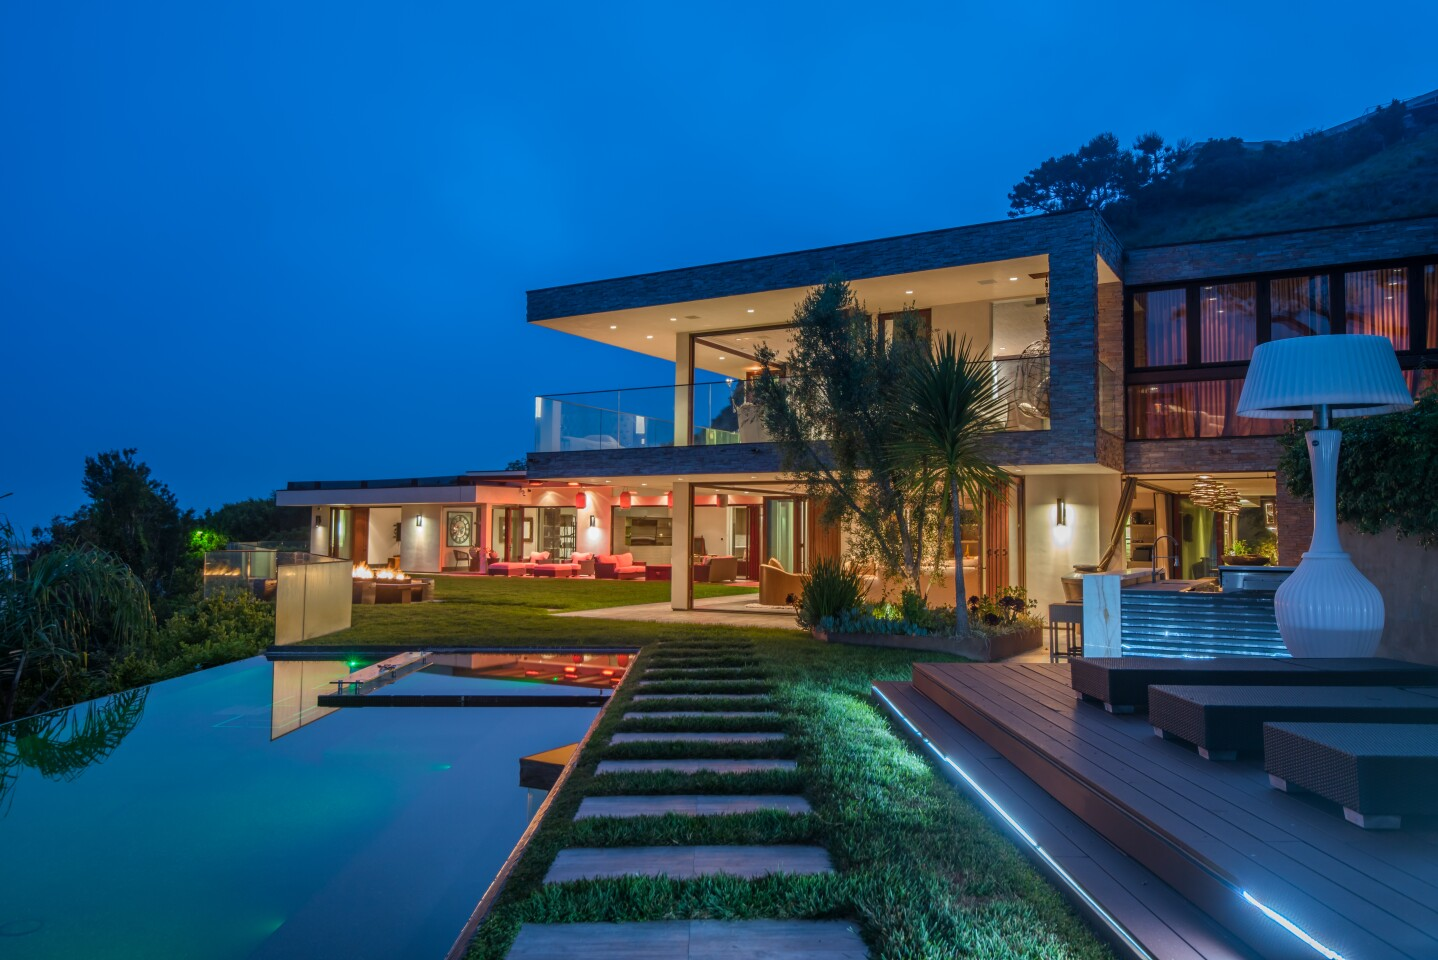 Reggie Bush's contemporary home in Pacific Palisades